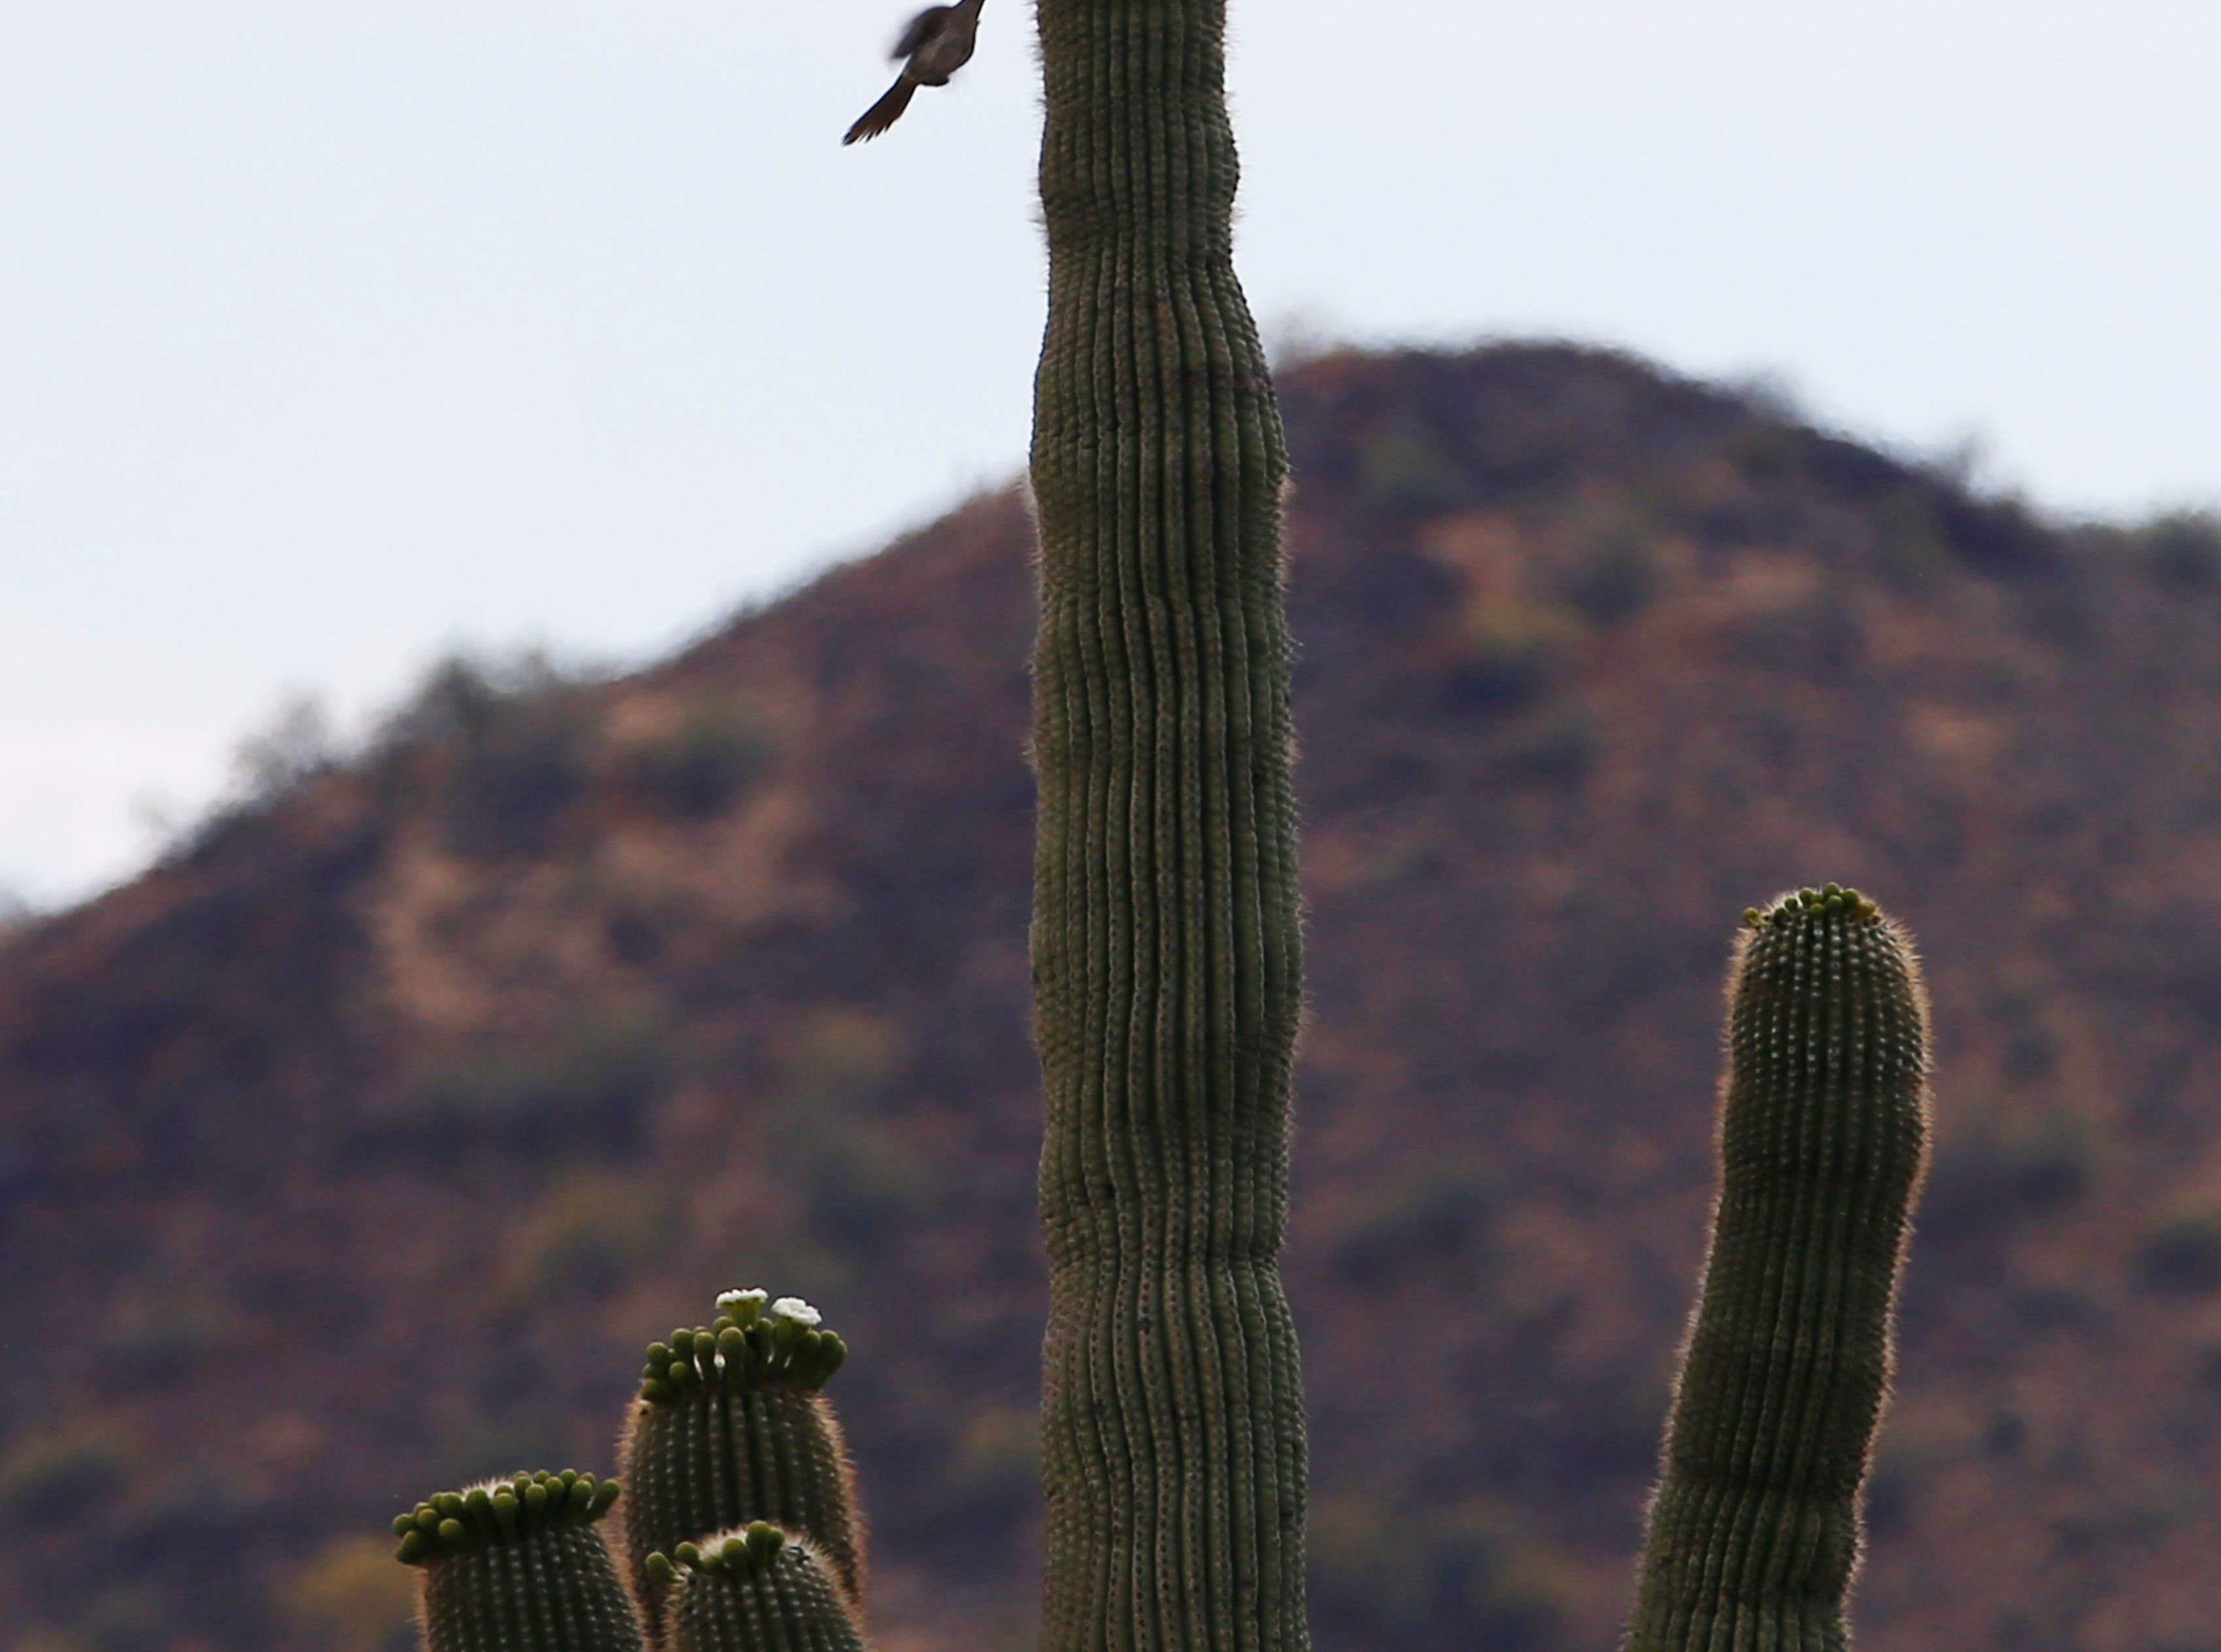 Birds fly around a saguaro in the Sonoran Preserve in north Phoenix May 12, 2019. Save Our Sonoran Preserve is opposing the proposed high-density housing next to the preserve.